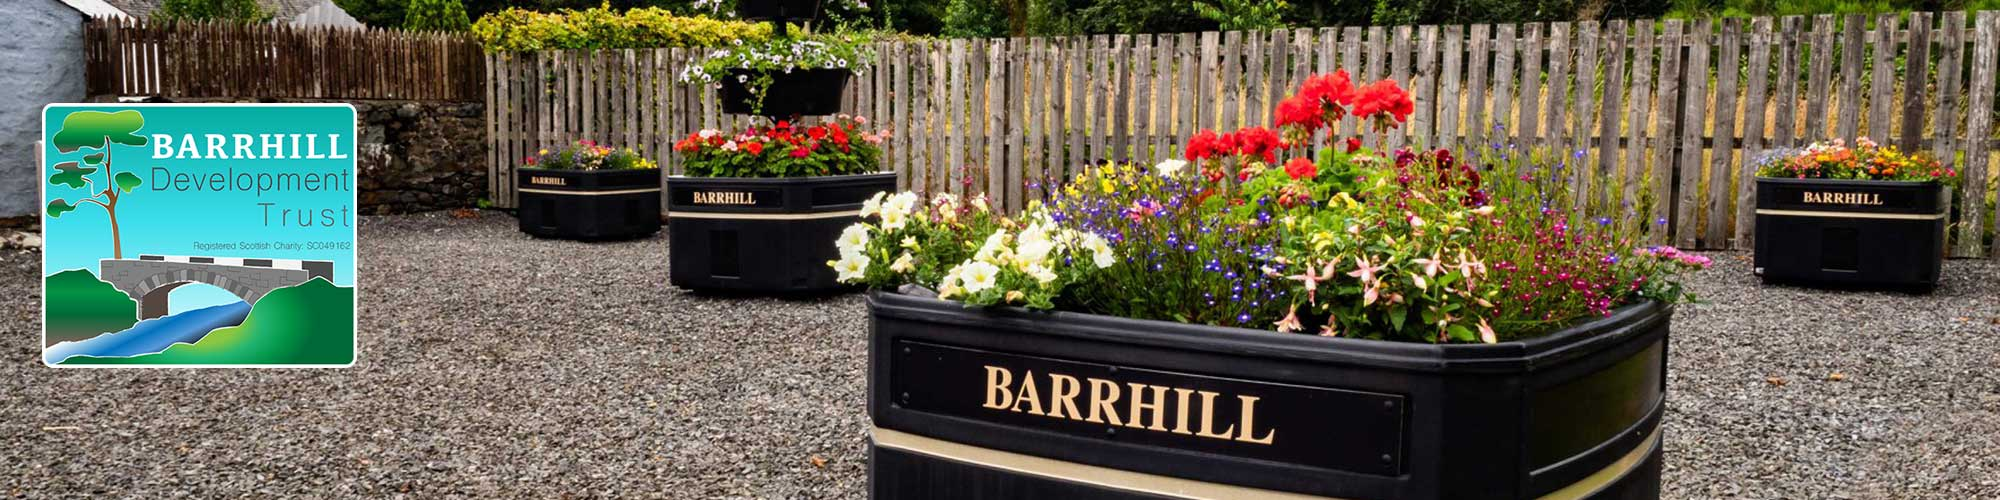 Barrhill in bloom header